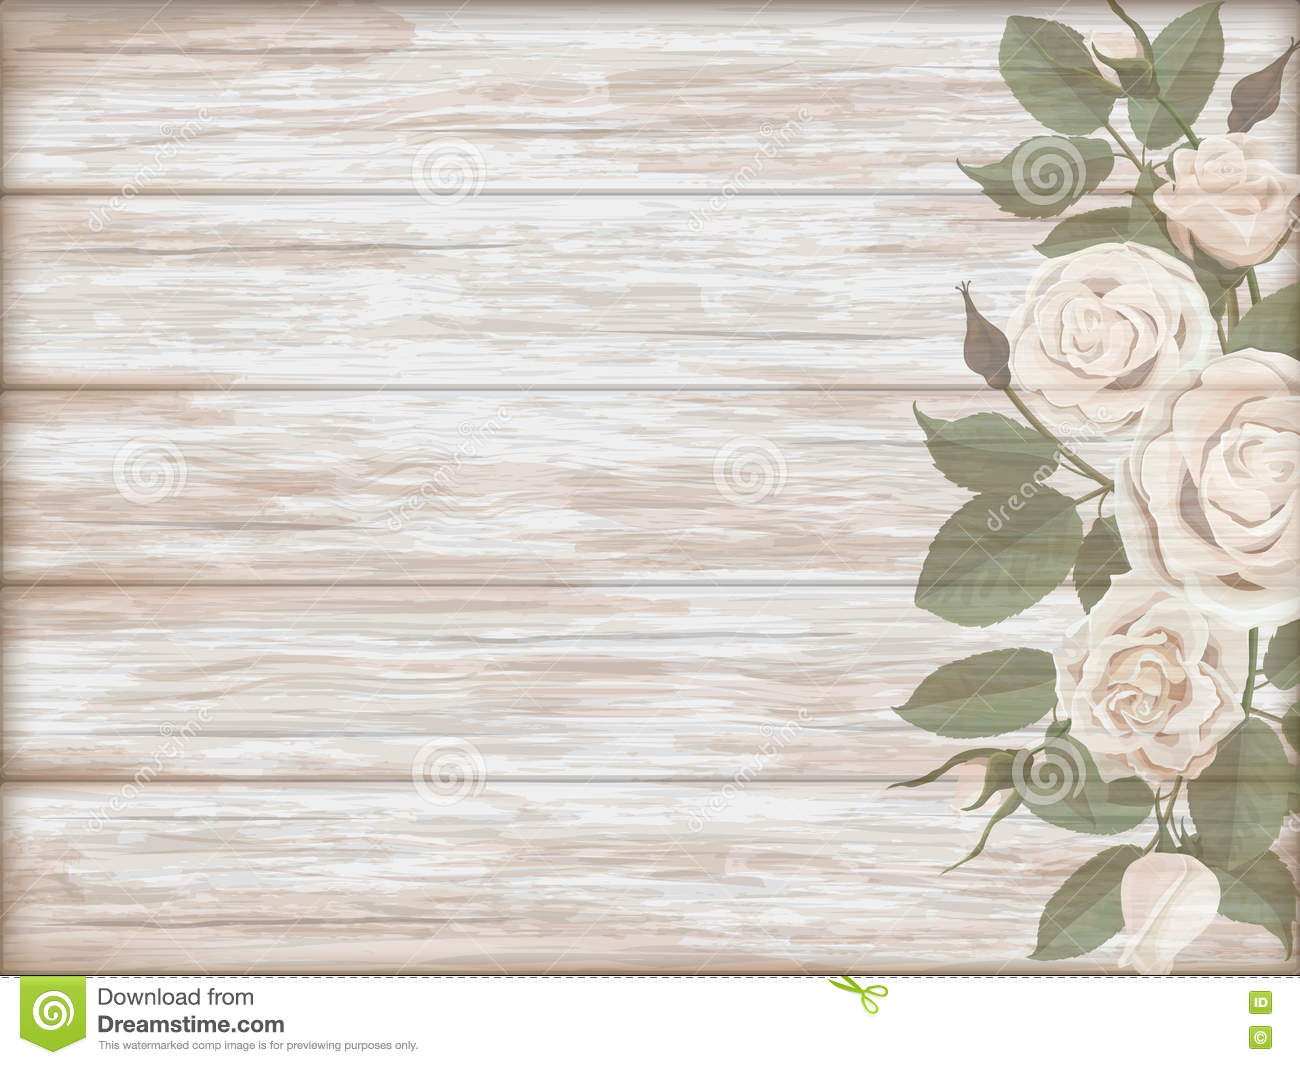 vintage wooden background white rose bud stock vector. Black Bedroom Furniture Sets. Home Design Ideas